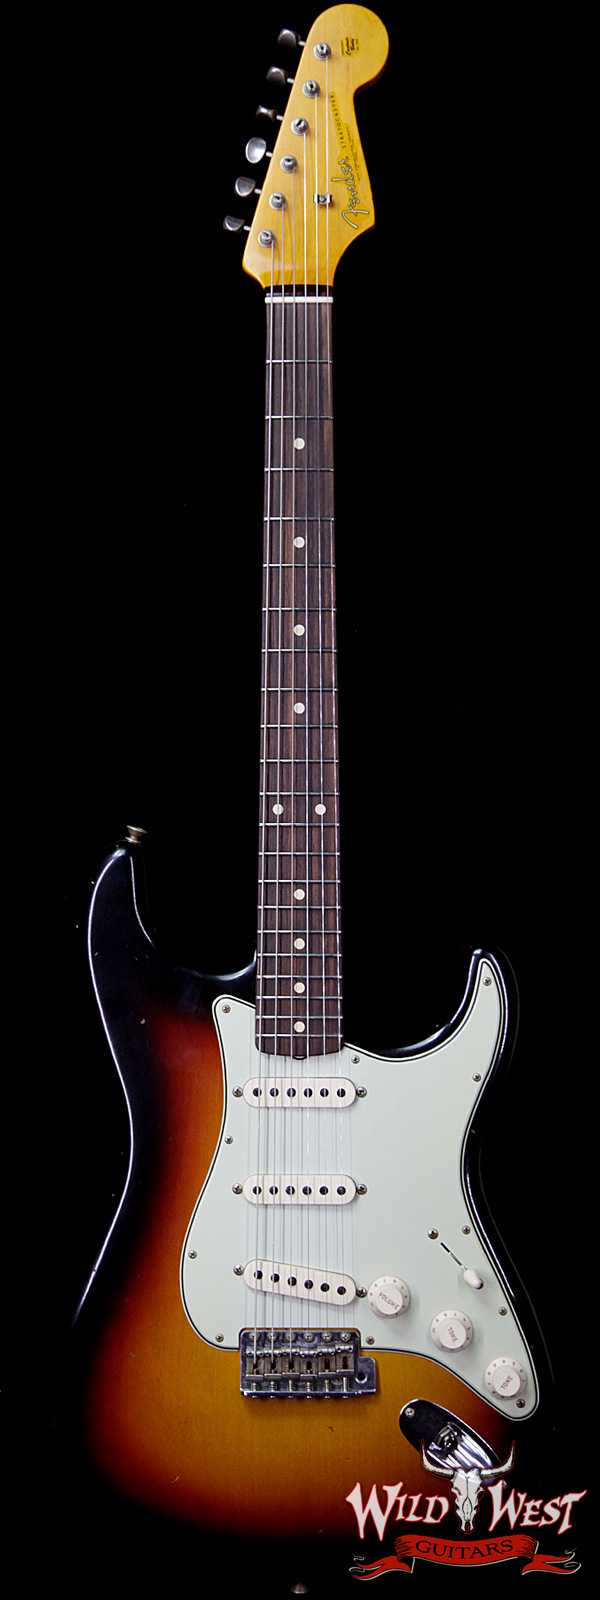 Fender Custom Shop 1961 Stratocaster Journeyman Relic Dirty Neck AAA Rosewood Slab Board 3 Tone Sunburst